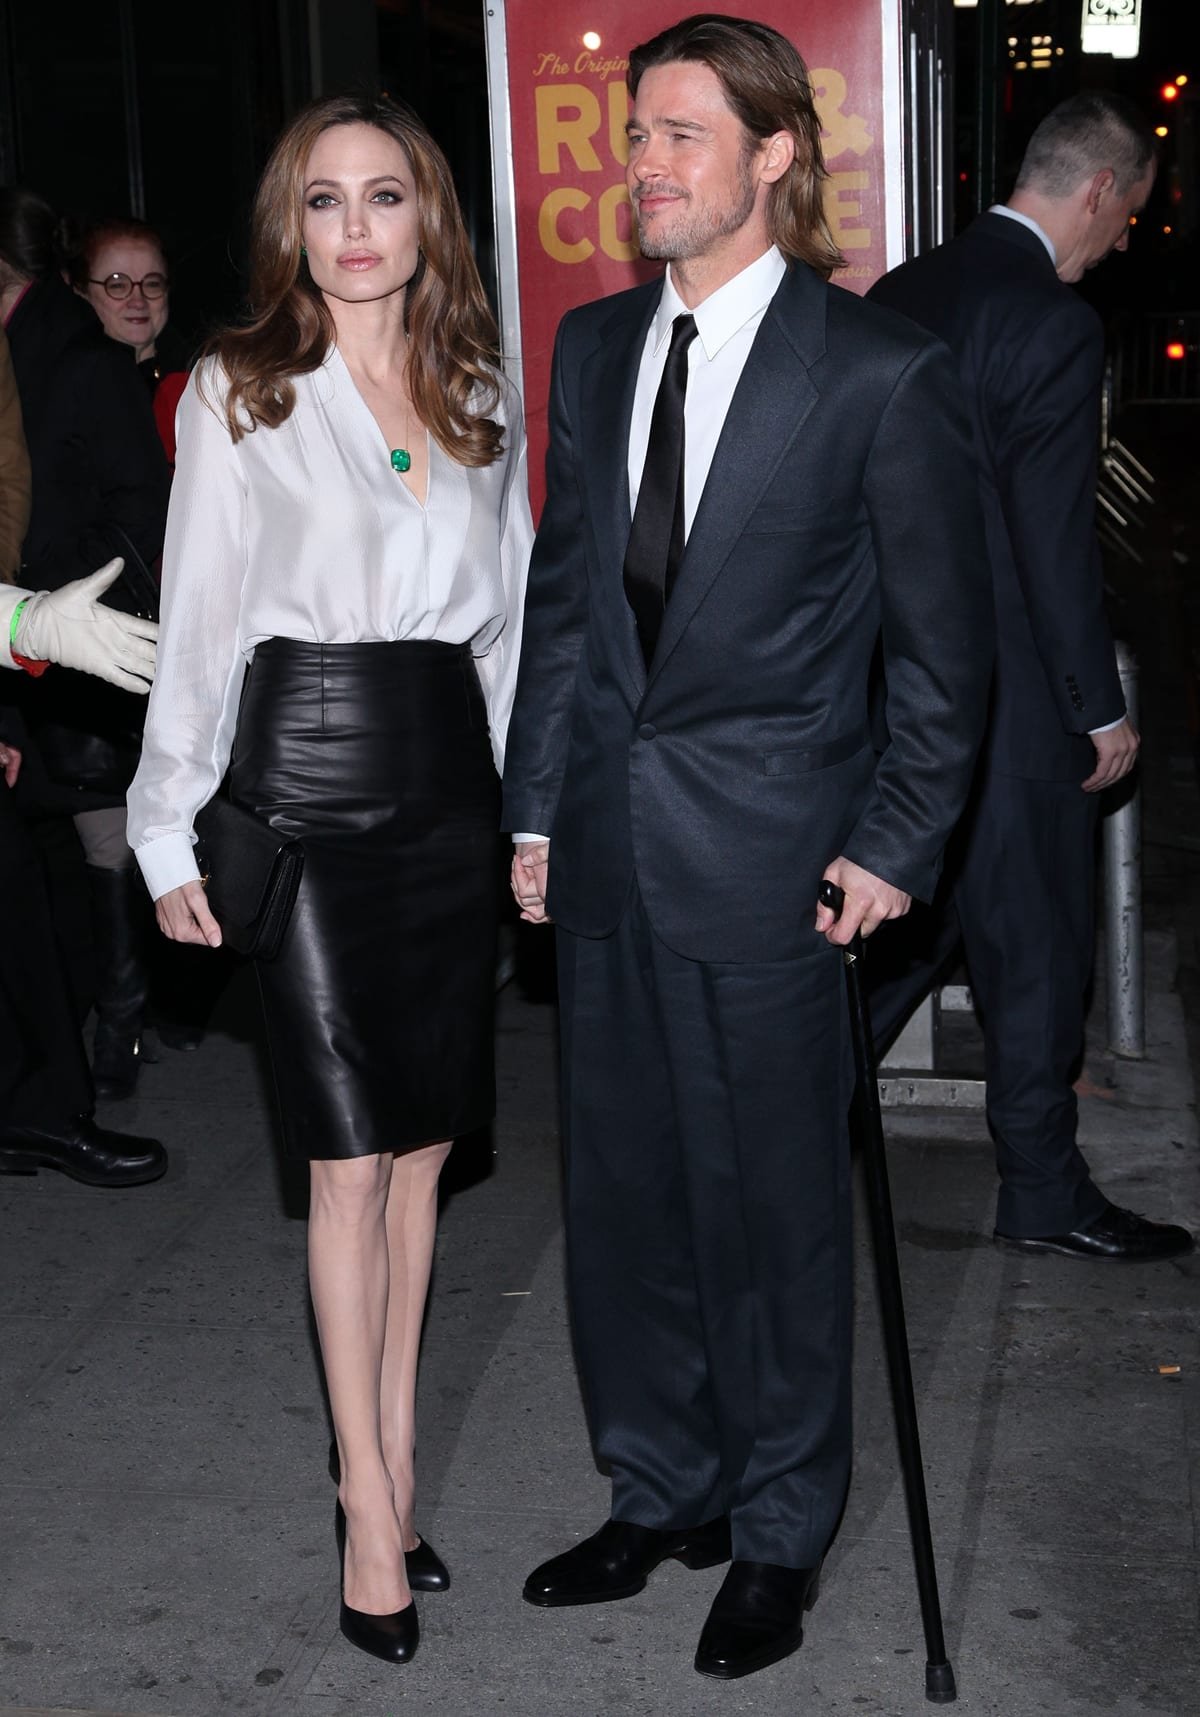 Even when wearing high heels, Angelina Jolie is significantly shorter than Brad Pitt